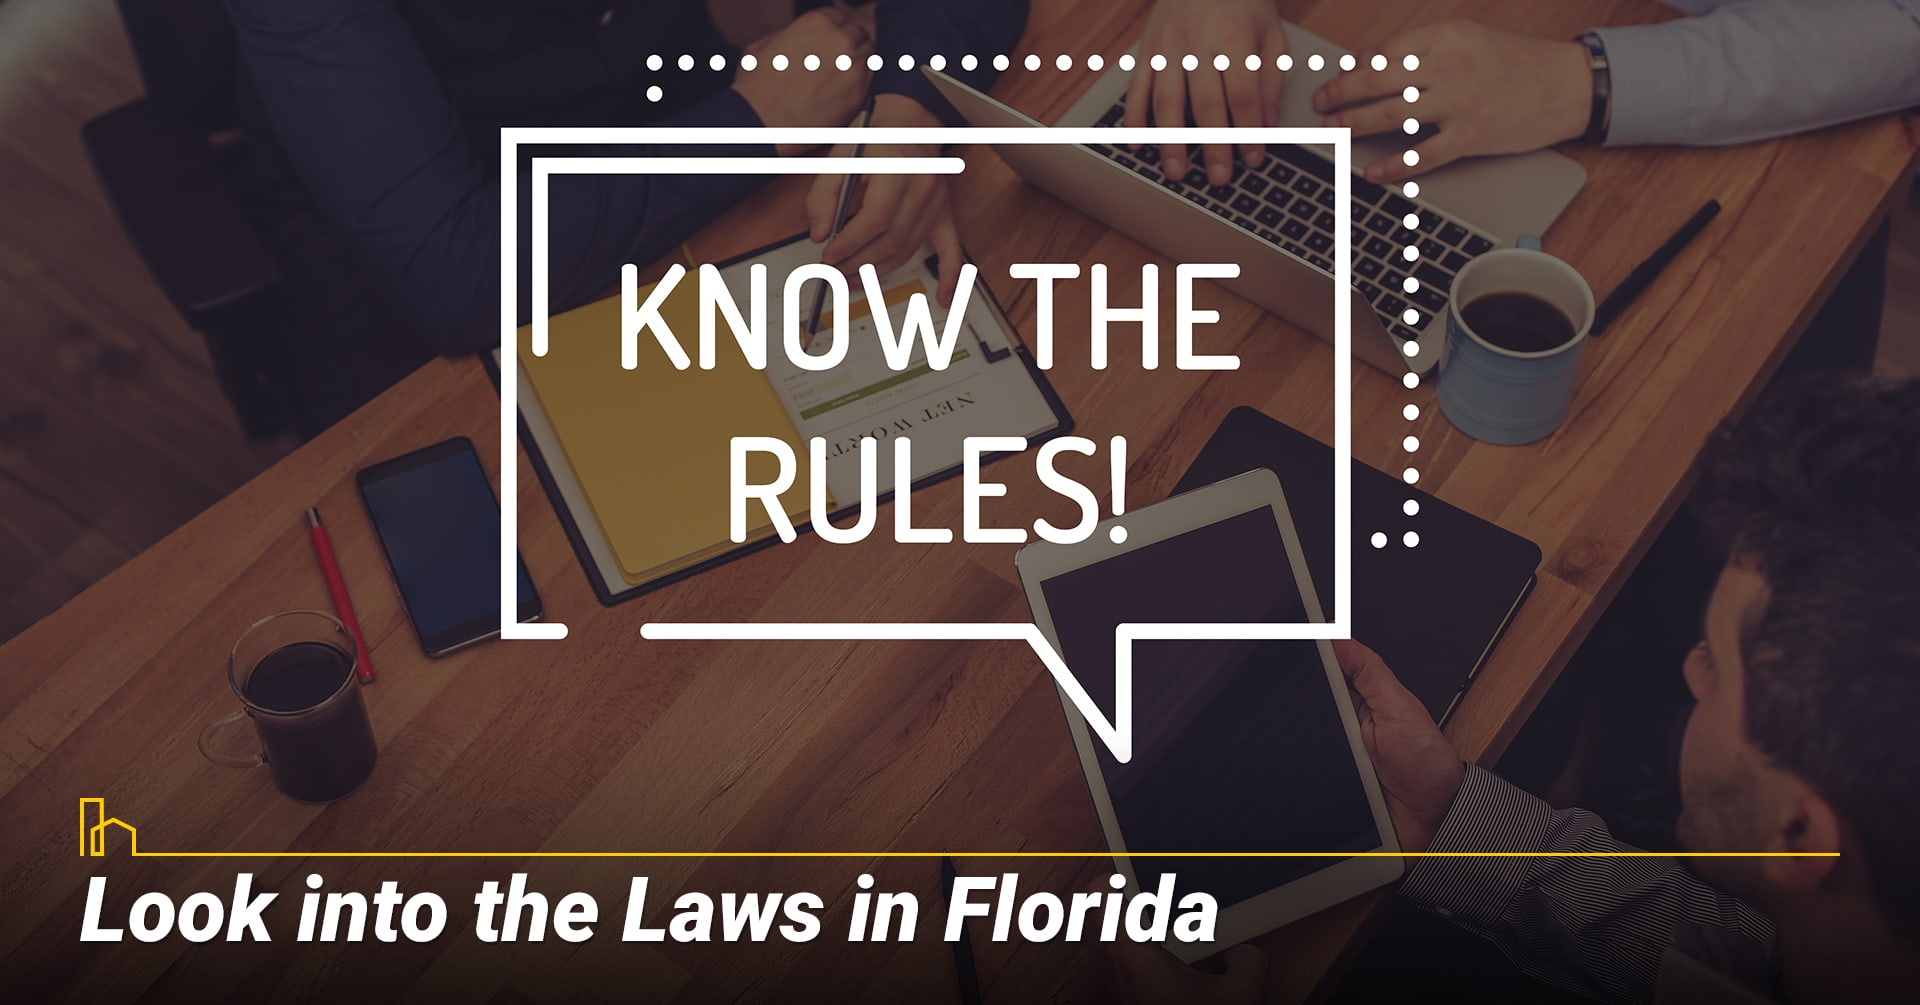 Look into the Laws in Florida, learn about local laws